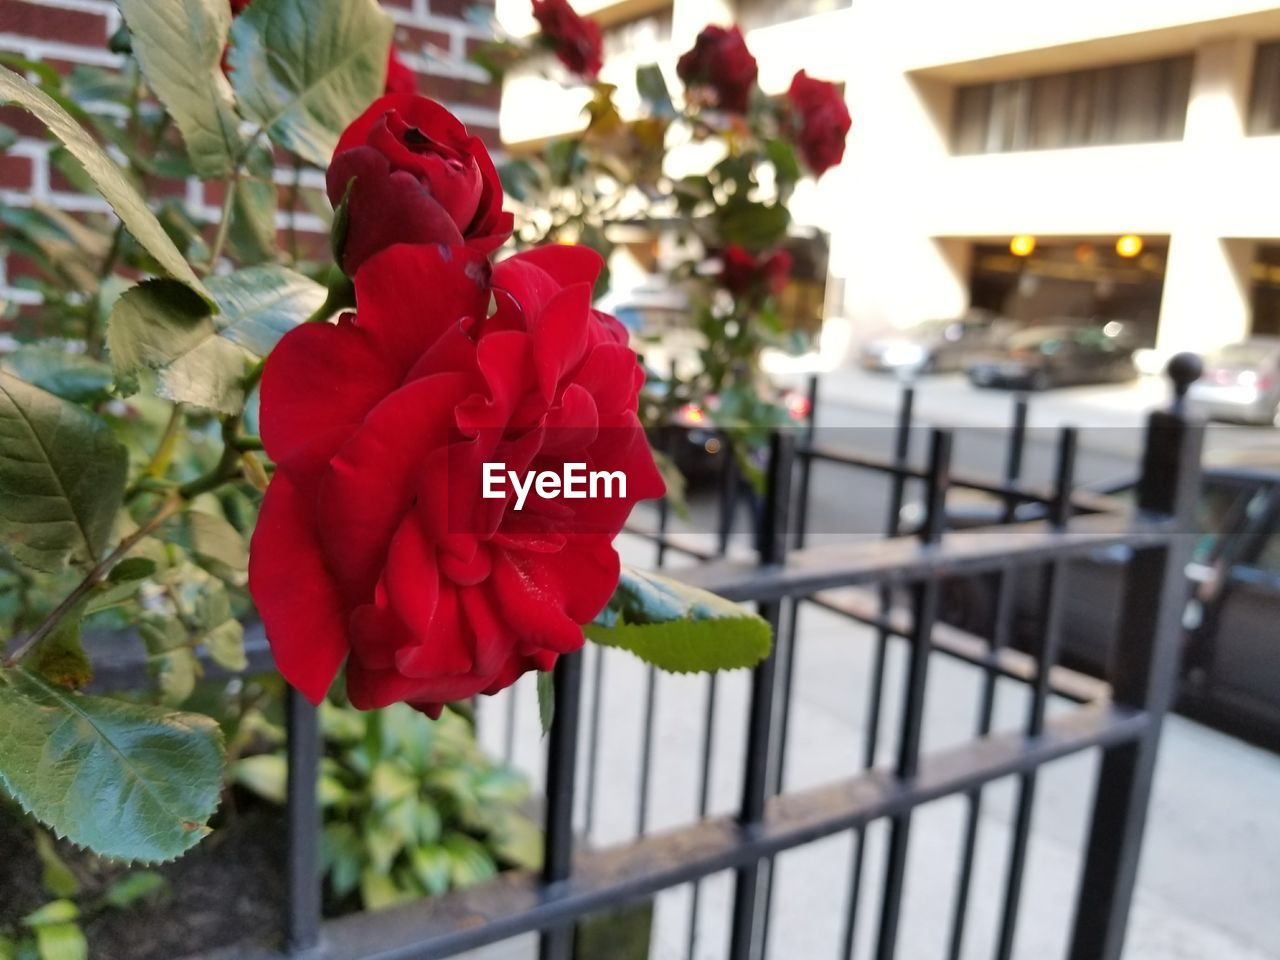 flower, rose - flower, fragility, focus on foreground, petal, red, beauty in nature, freshness, flower head, nature, close-up, outdoors, no people, day, blooming